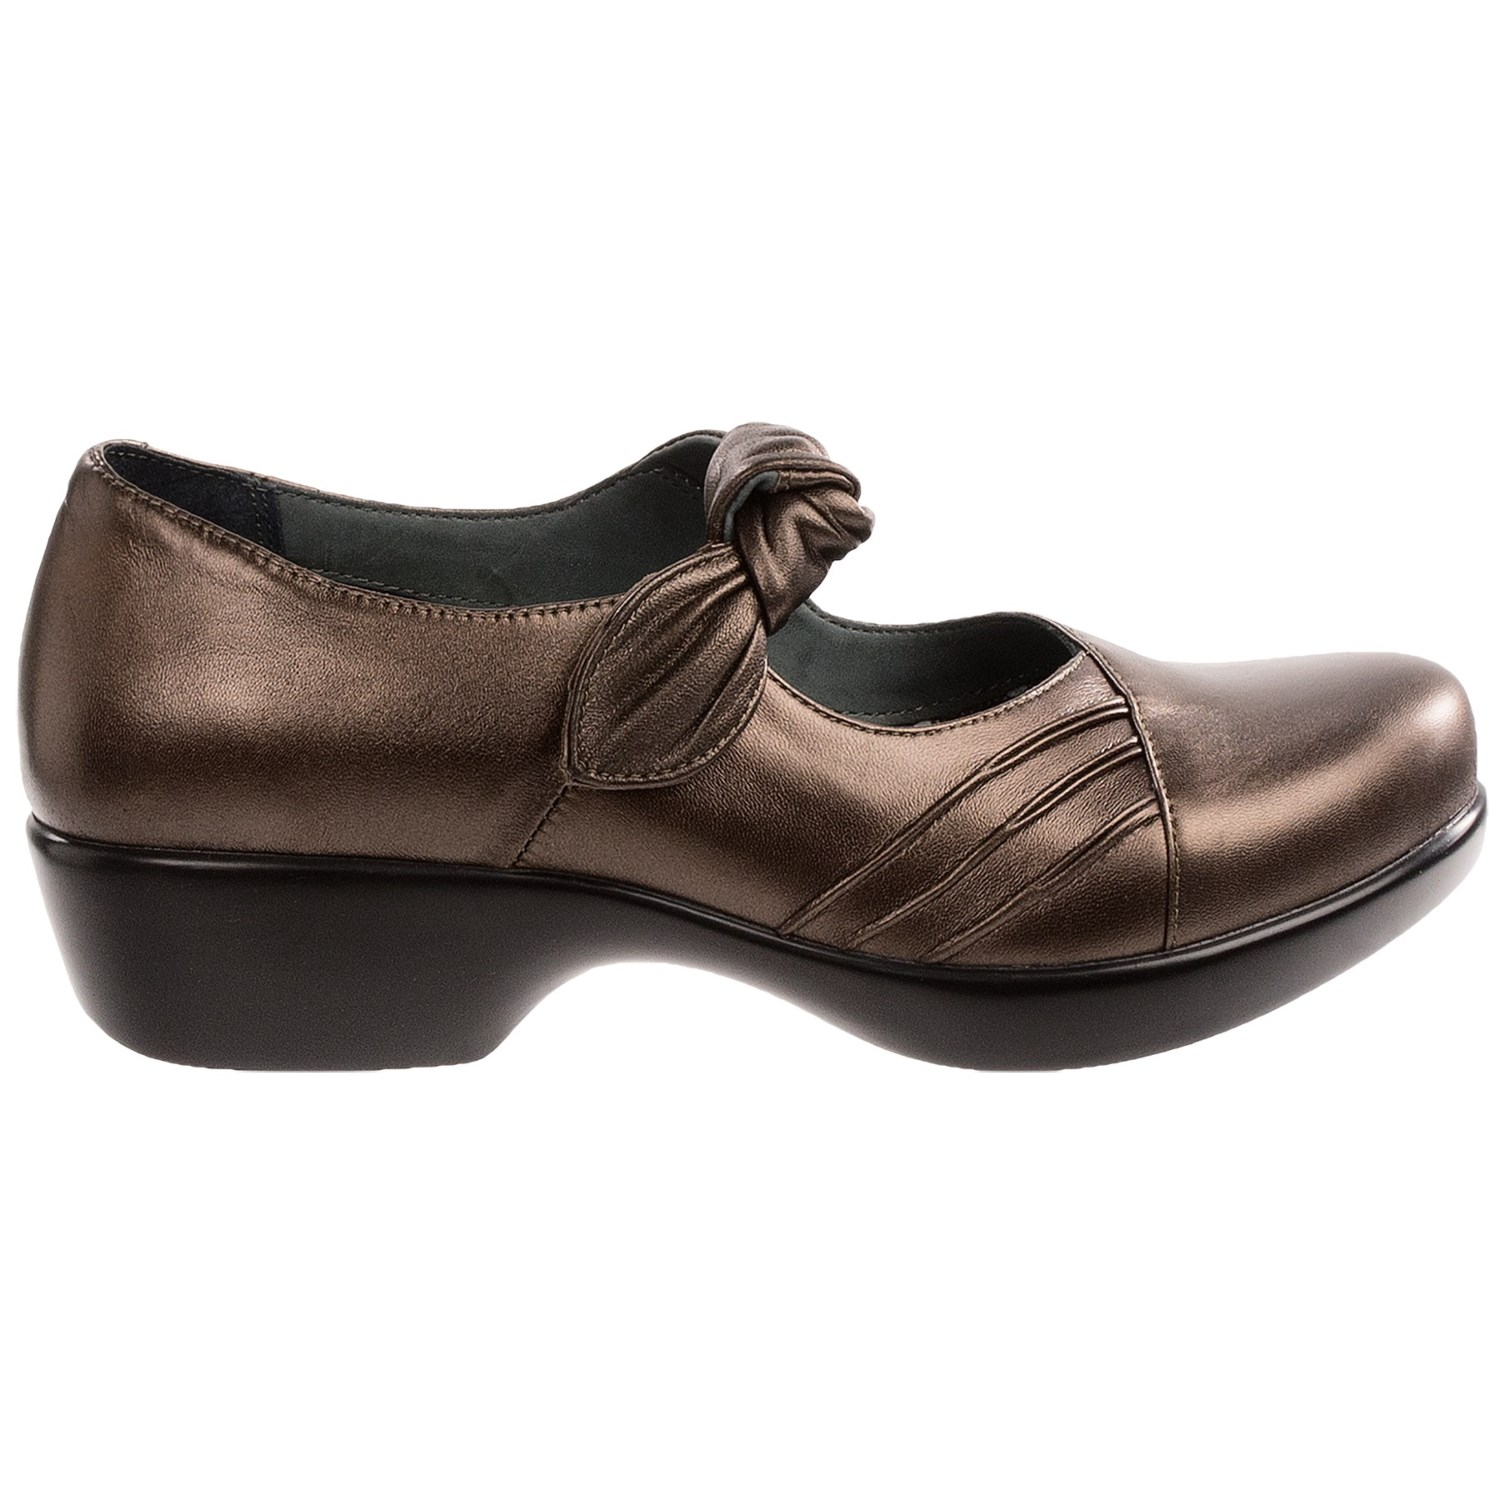 Dansko Shoes Reviews